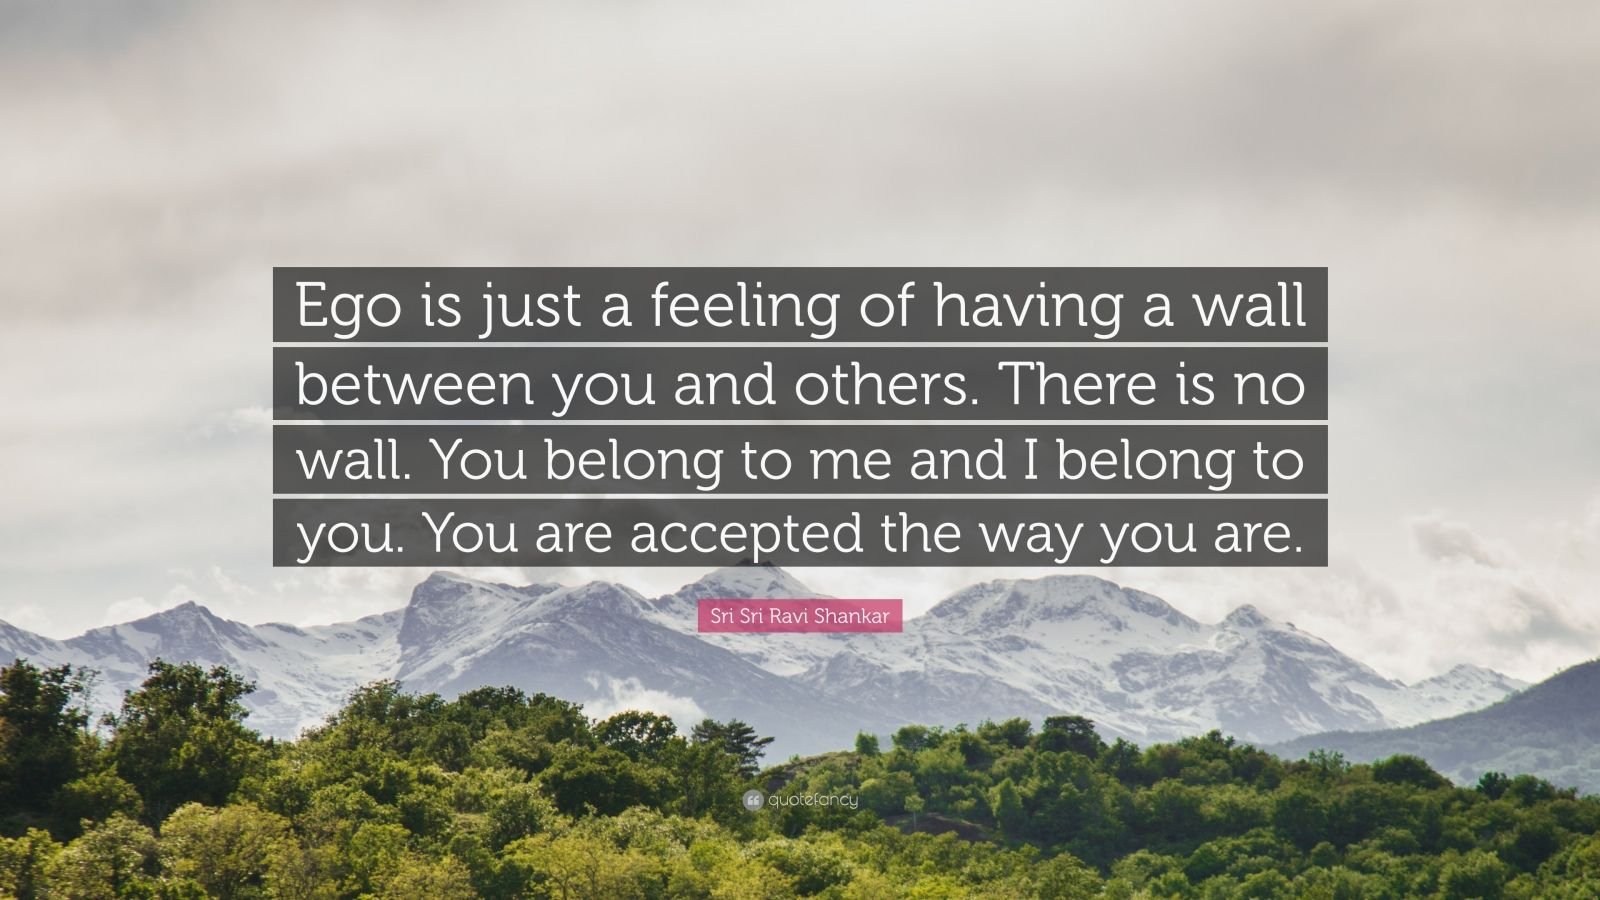 """Sri Sri Ravi Shankar Quote: """"Ego is just a feeling of having a wall between you and others. There is no wall. You belong to me and I belong to you. You are accepted the way you are."""""""